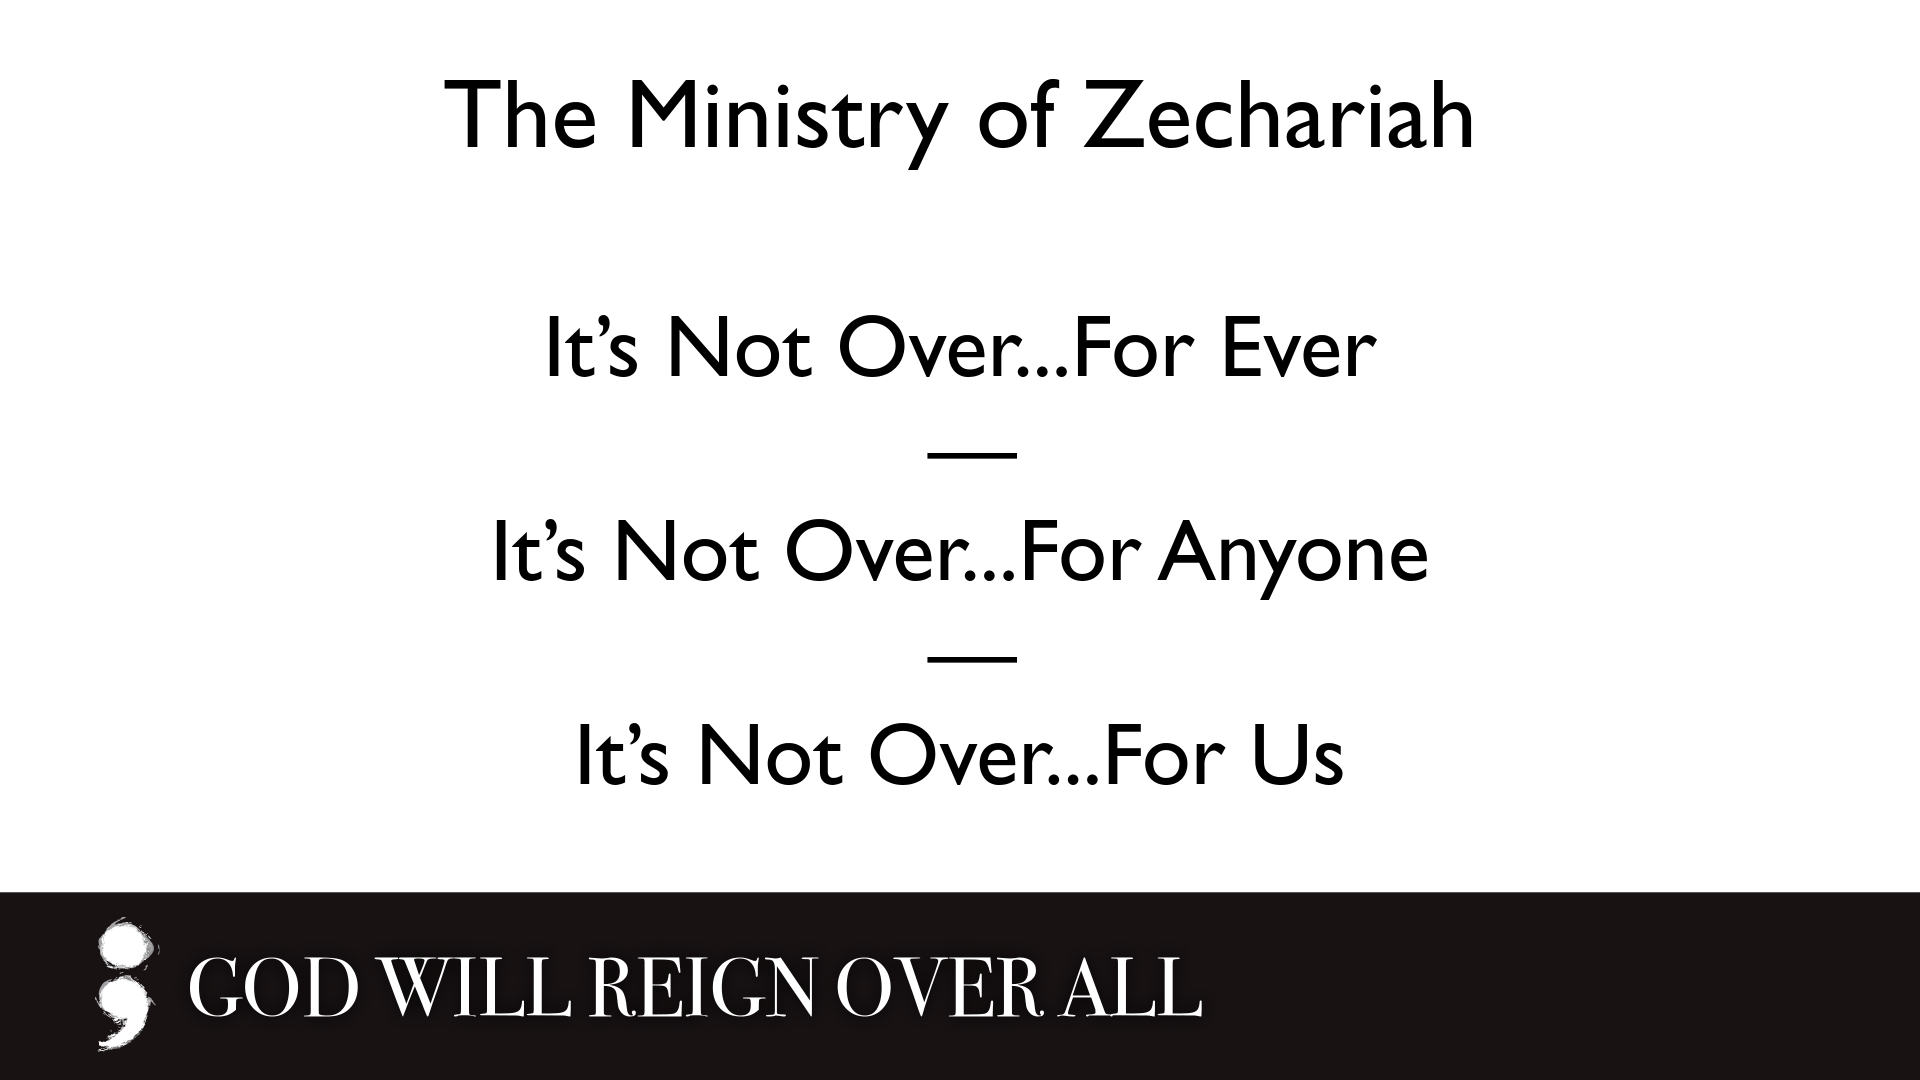 God will reign over all.007.png